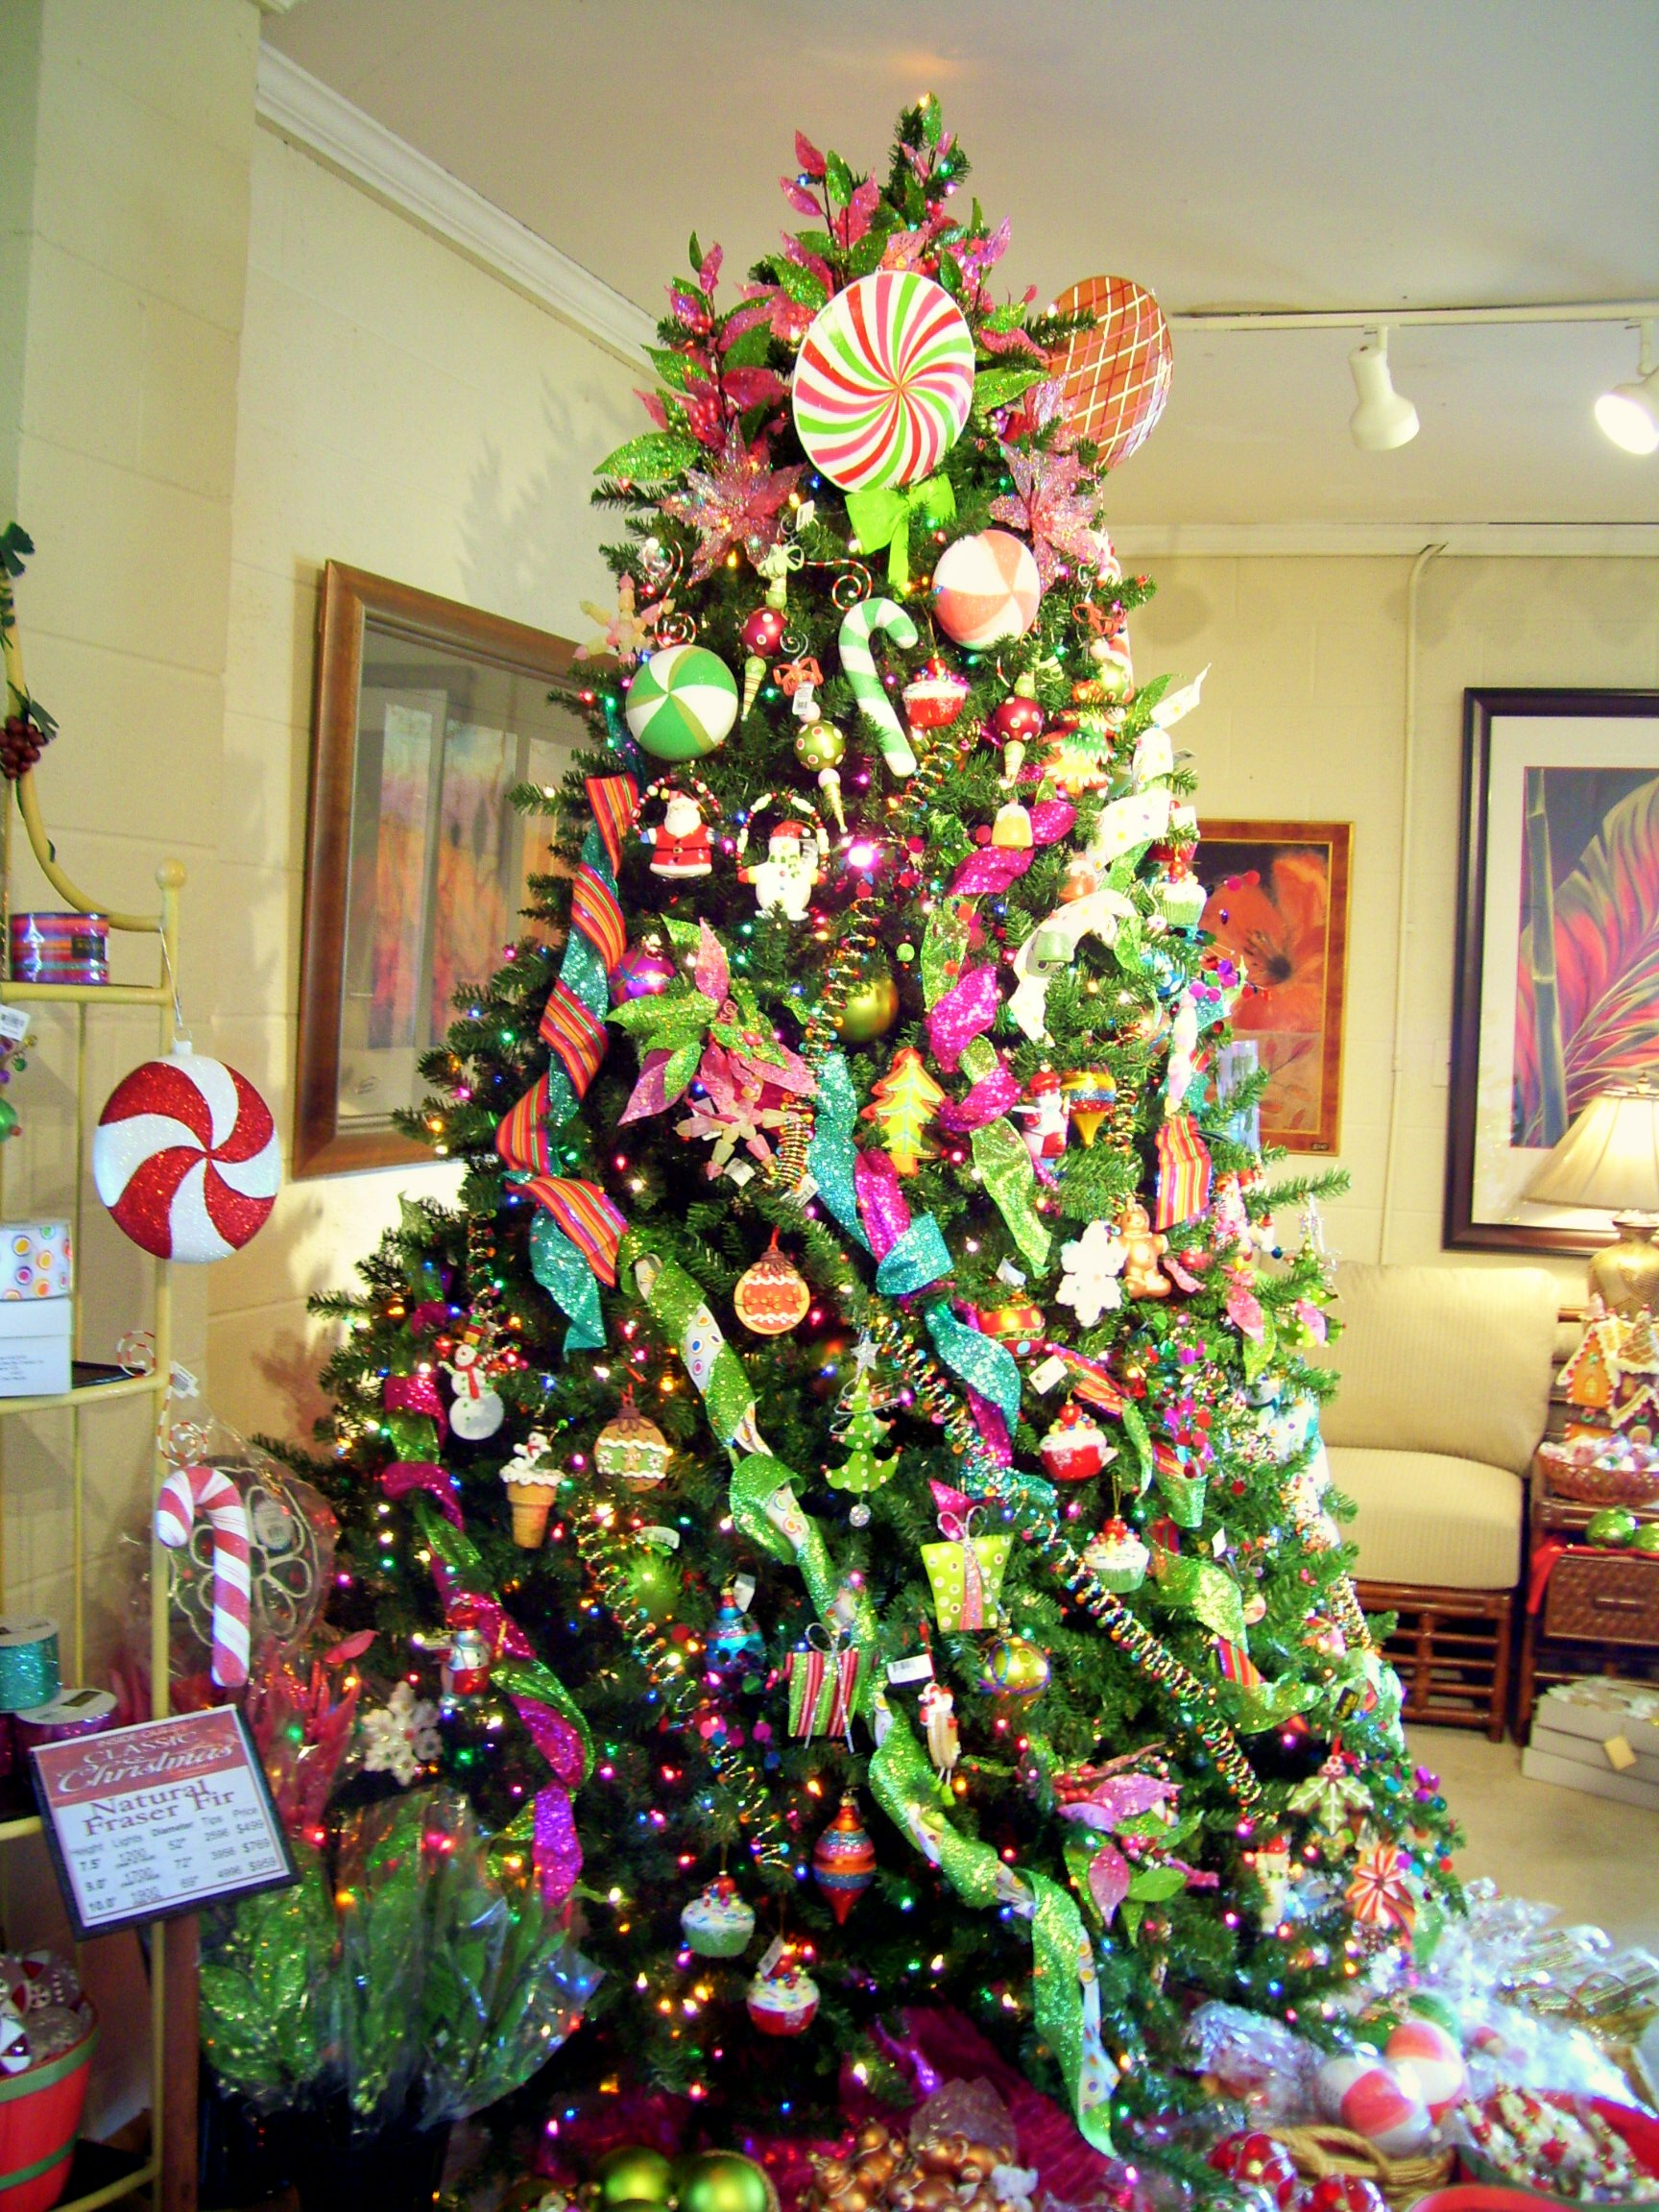 http://brentwood.thefuntimesguide.com/images/blogs/sugarplum-christmas-tree-decorating-ideas.jpg